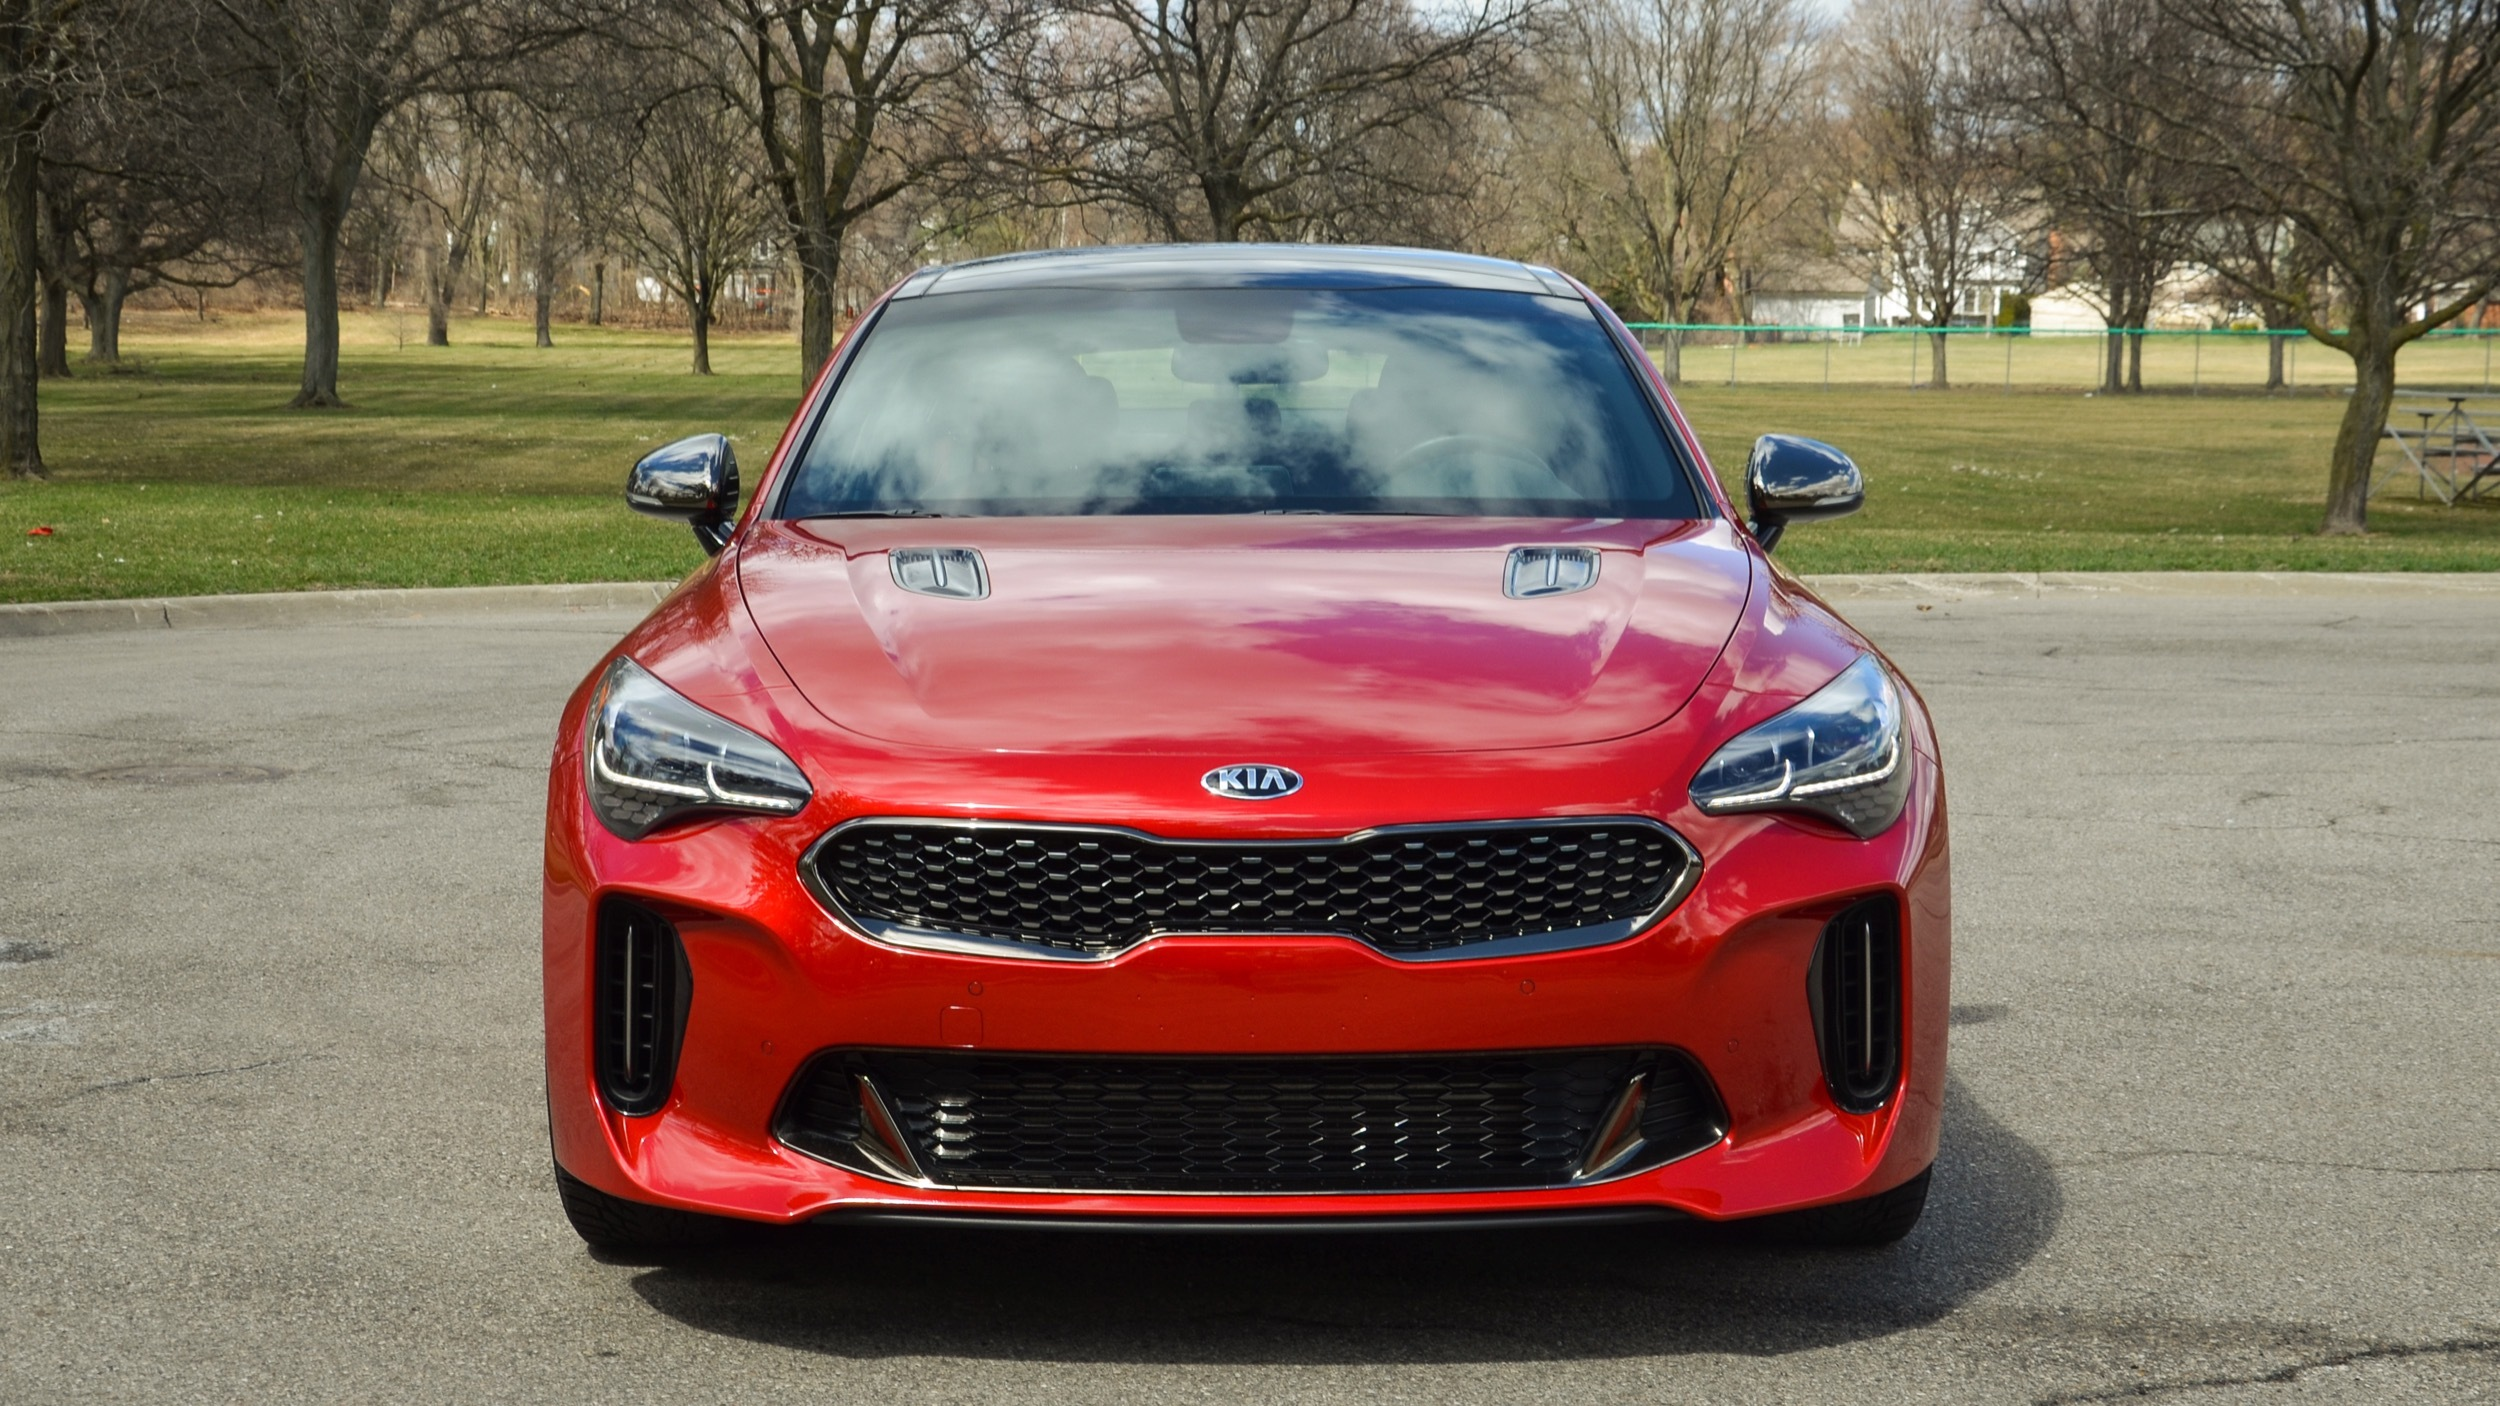 2018 Kia Stinger GT Long-Term Review: Living with the Stinger | Autoblog